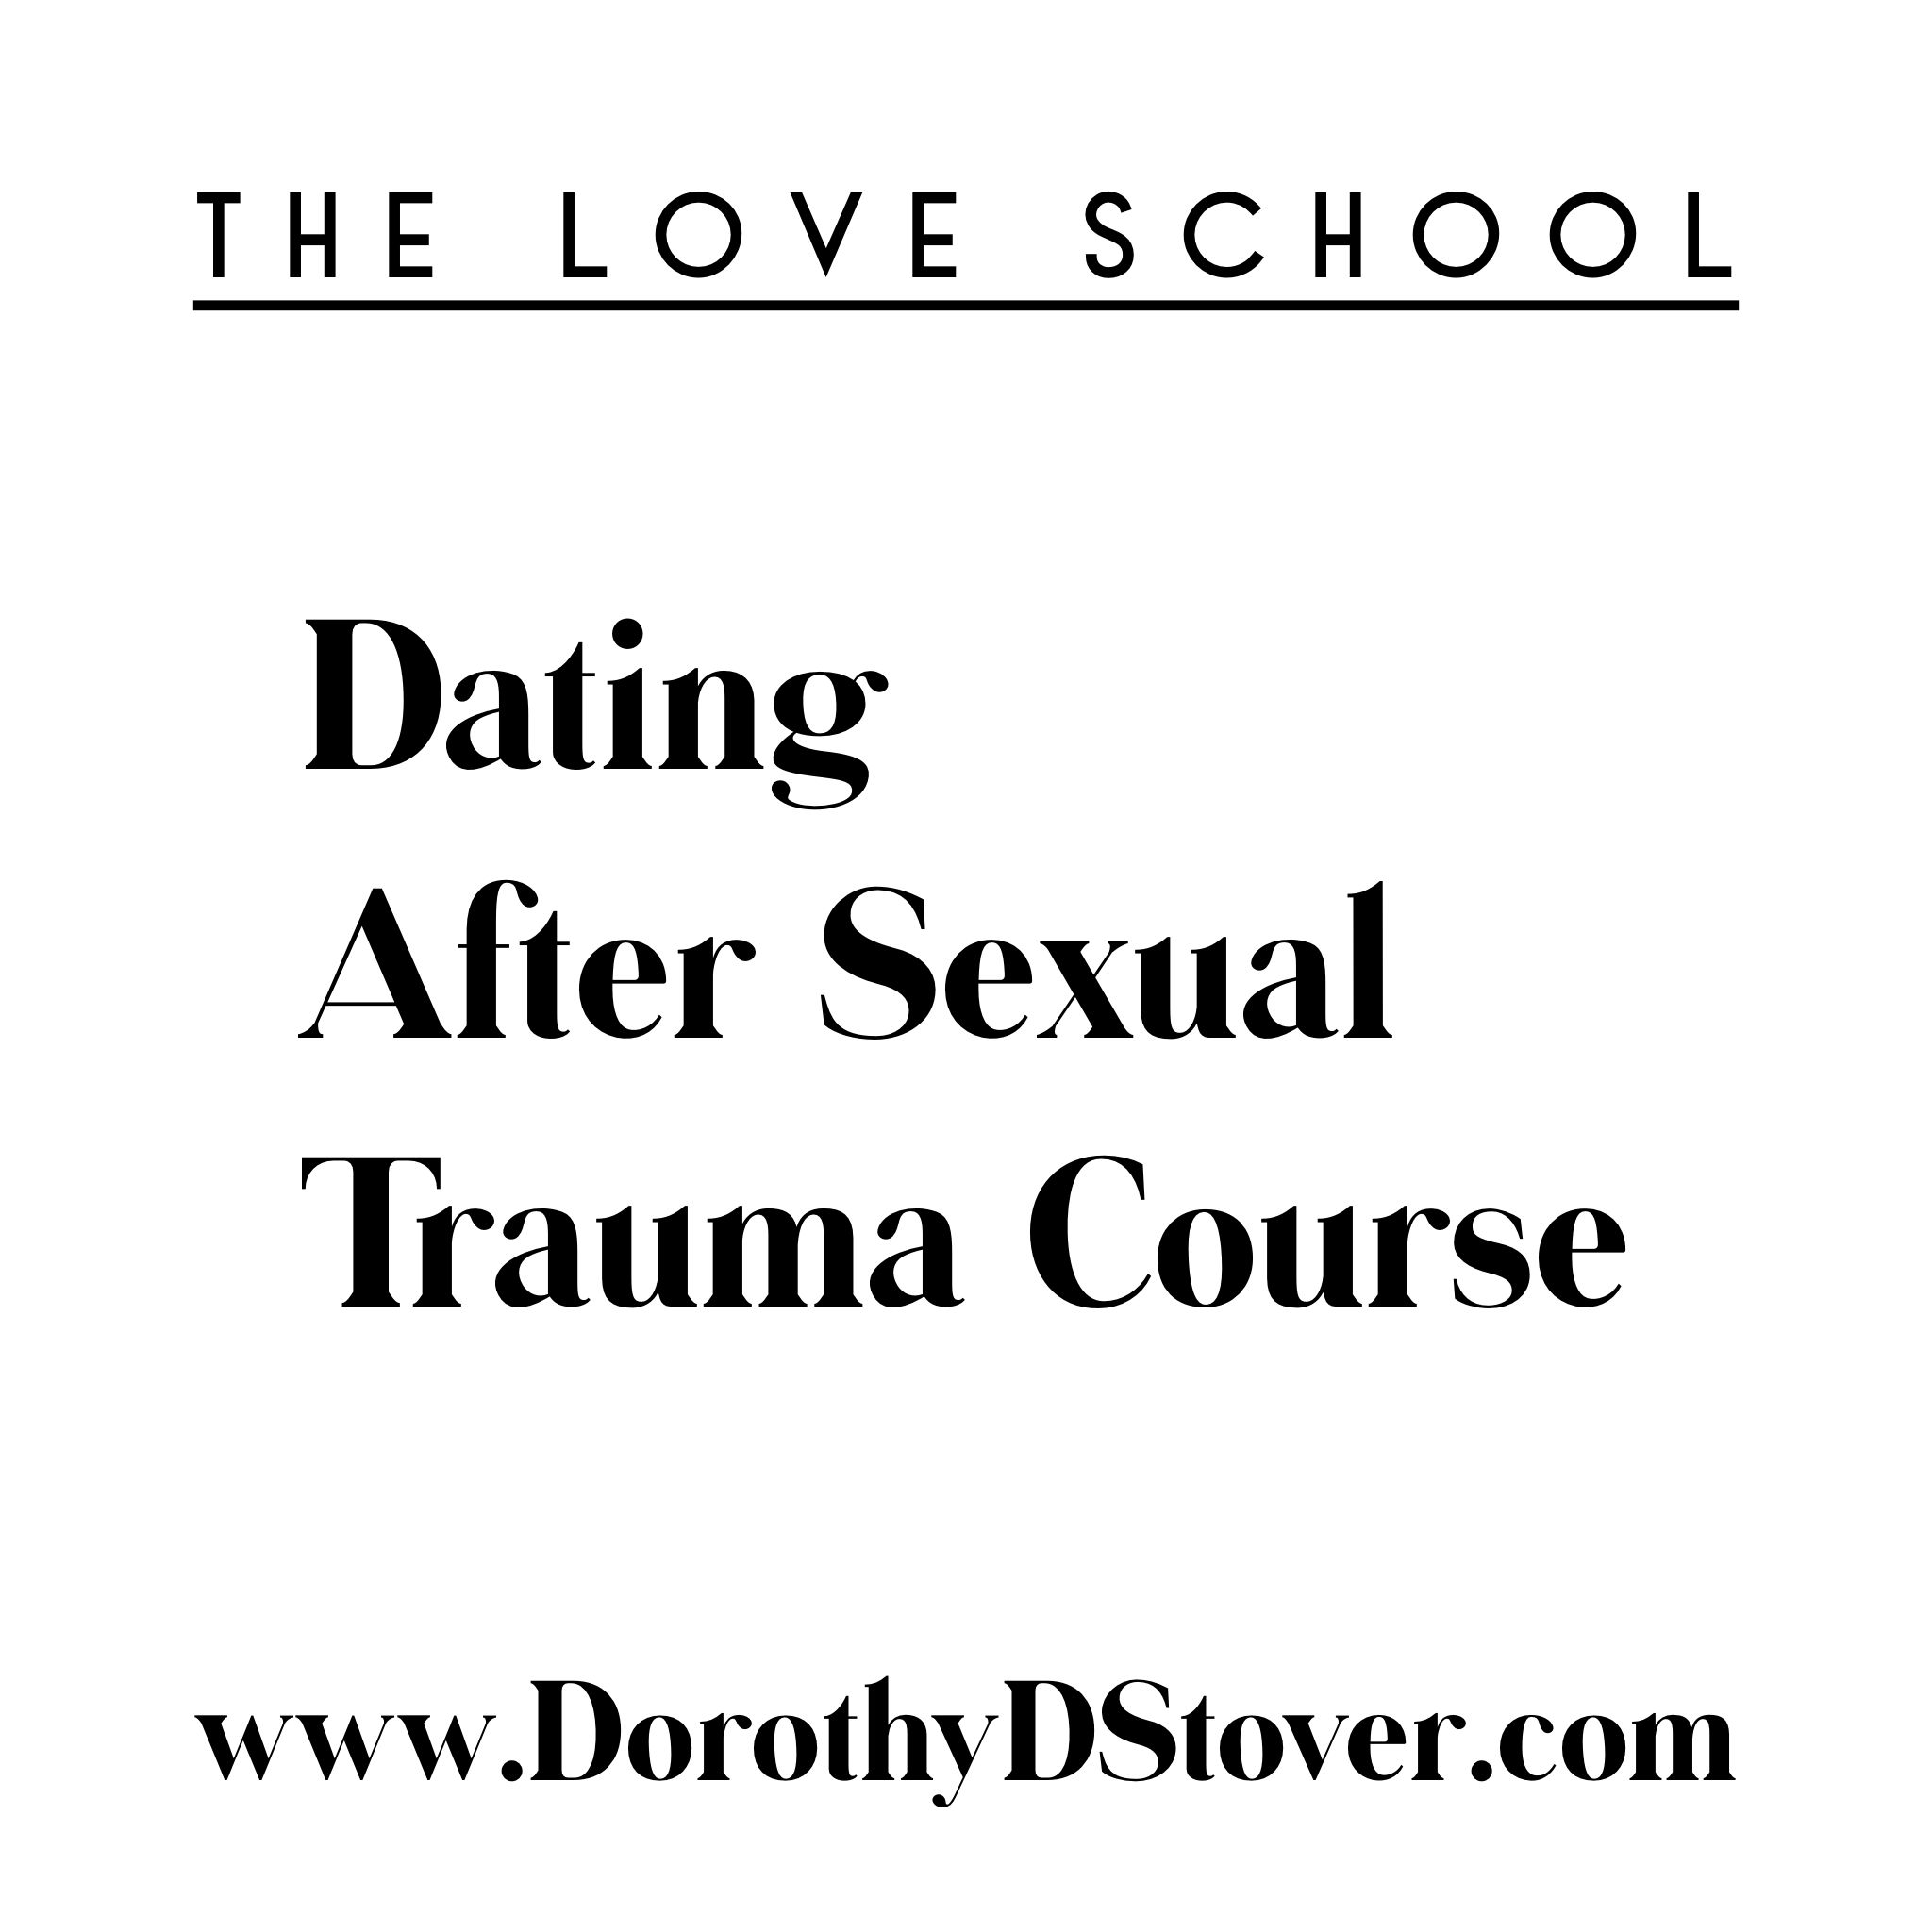 Dating After Sexual Trauma - This course is dating after sexual trauma. The course will take you through what it looks and feels like to be in a healthy dating environment as well as a healthy relationship. How to establish healthy boundaries. The course also takes the student through like step by step helping you find solid matches, screen them, perfect date formula and what to do after a date that leads to a committed and connected partnership while also honoring yourself after sexual trauma.Week 1 - Honoring yourselfWeek 2 - What a healthy dating life looks likeWeek 3 - BoundariesWeek 4 - Where to search for matchesWeek 5 - Screening MatchesWeek 6 - The Perfect Date FormulaWeek 7 - The After-The-Date Best practicesWeek 8 - How to get to a committed relationship